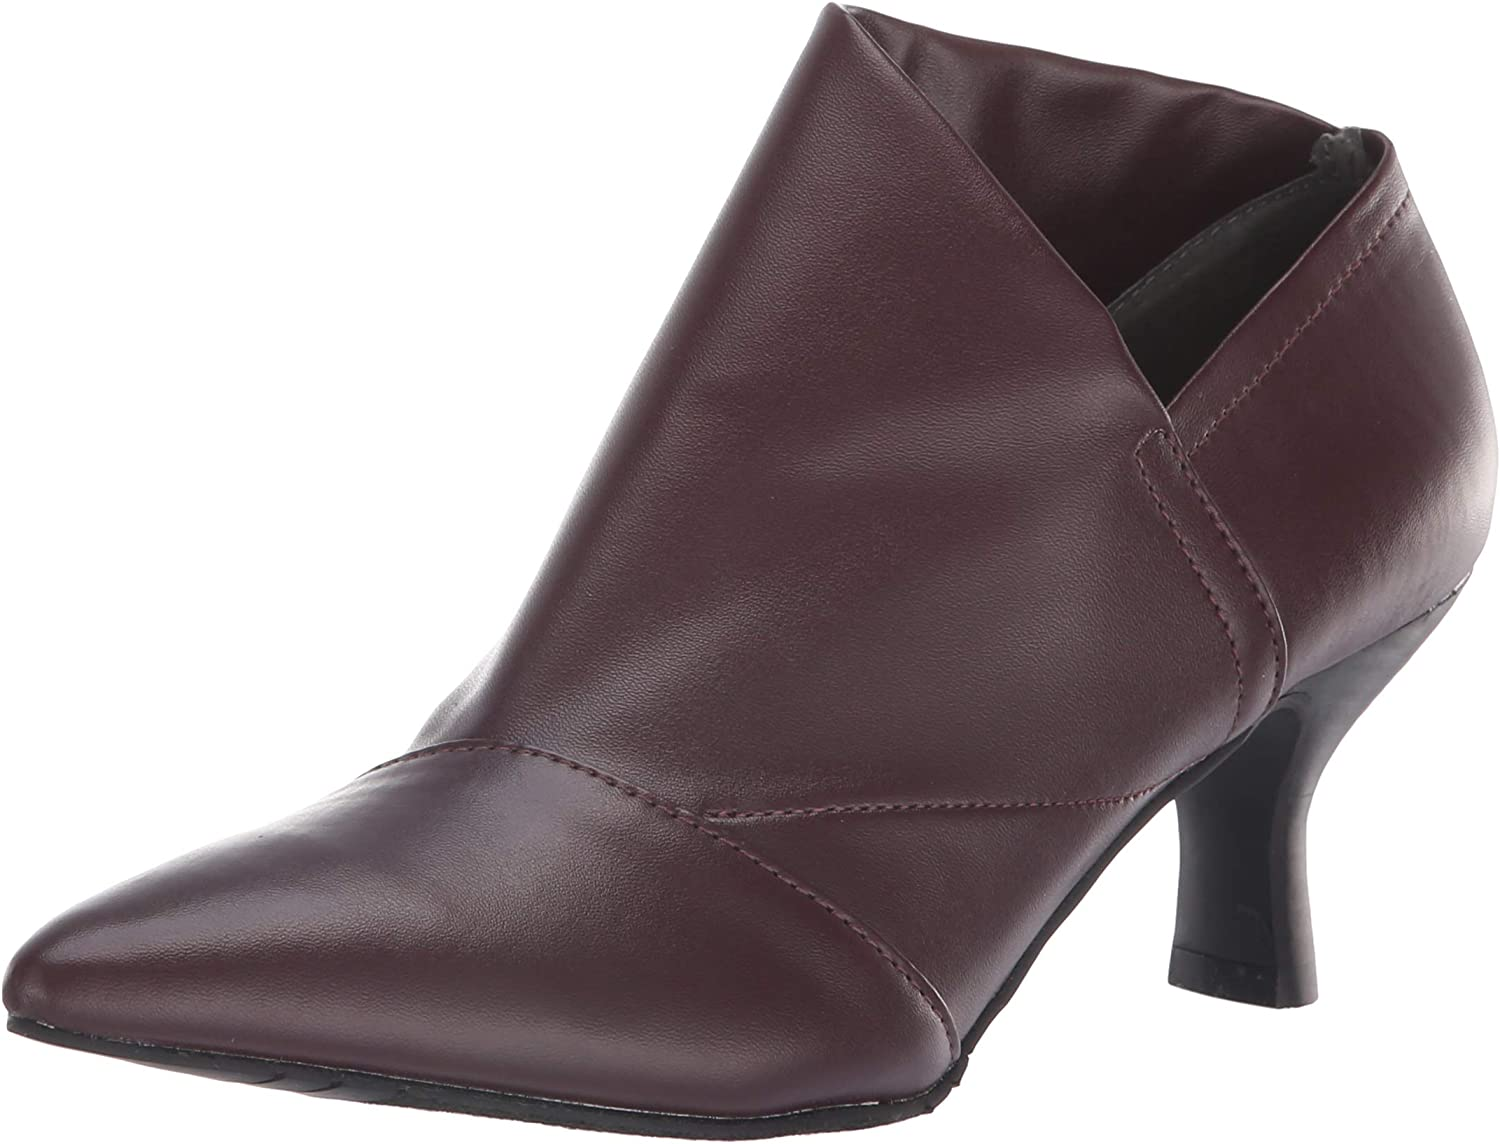 Adrianna Papell Womens Hayes Pump